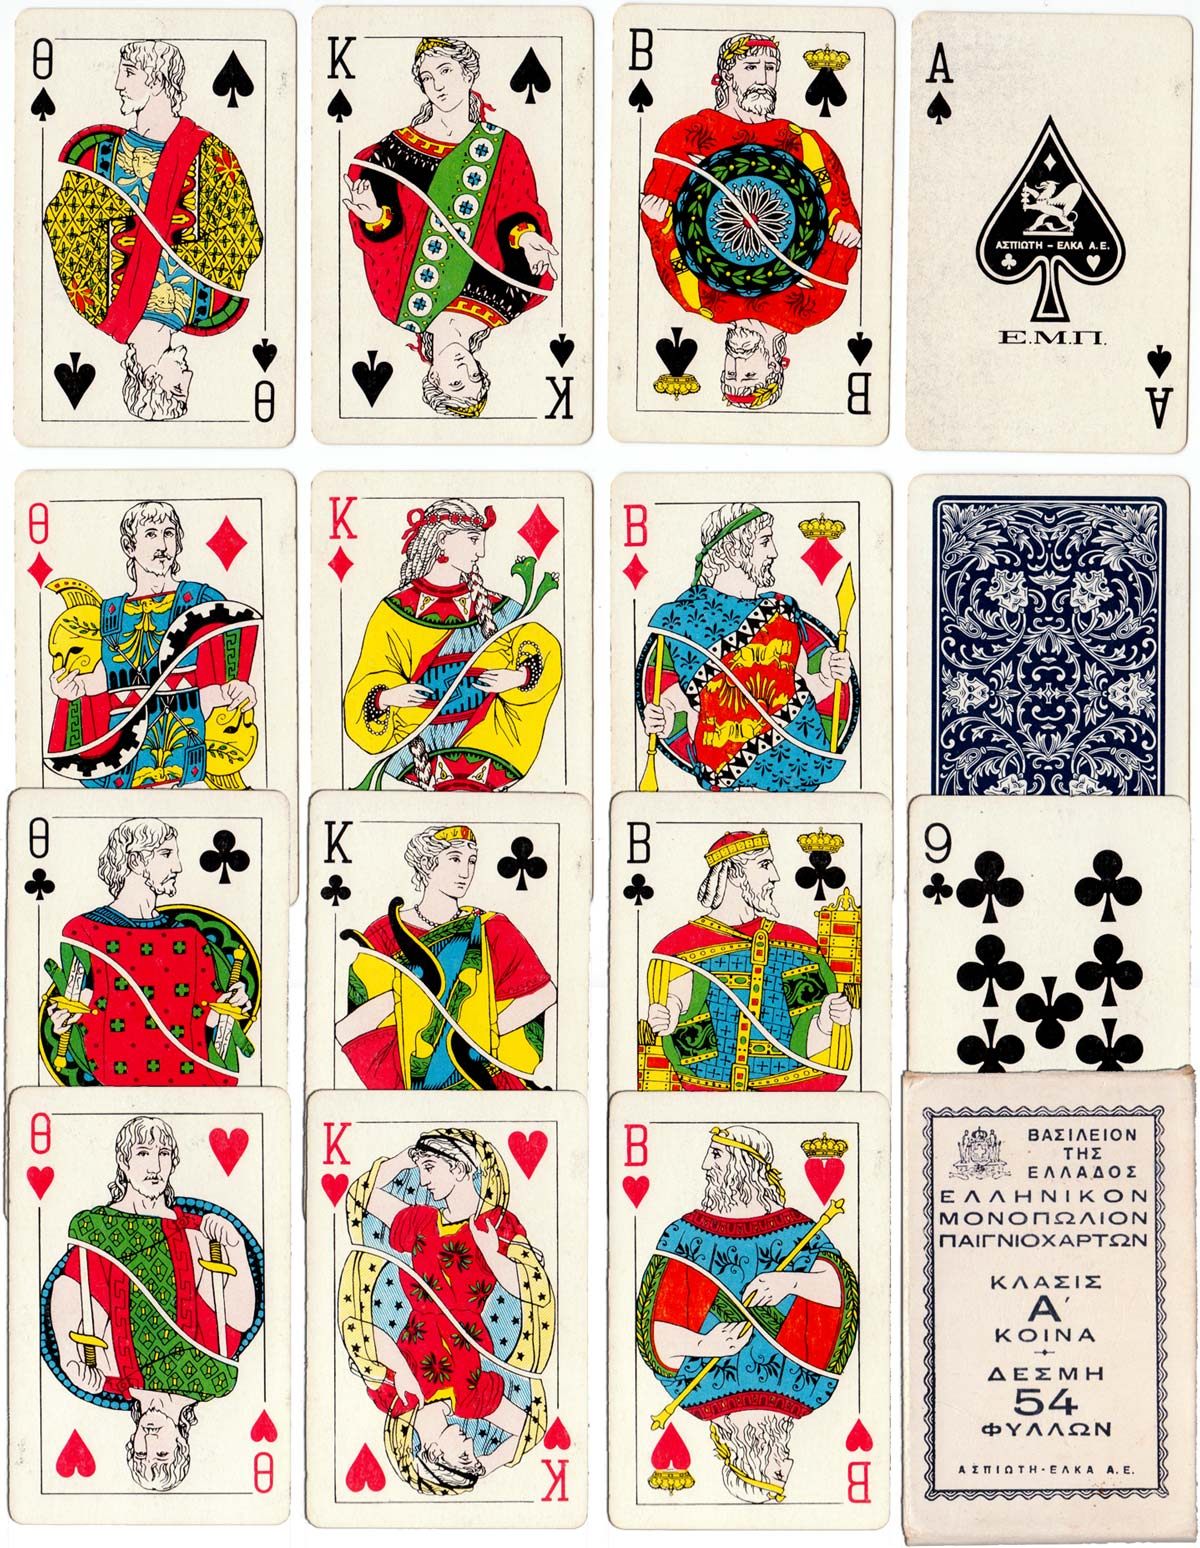 Playing Cards manufactured by Aspioti Elka A.E., 1960